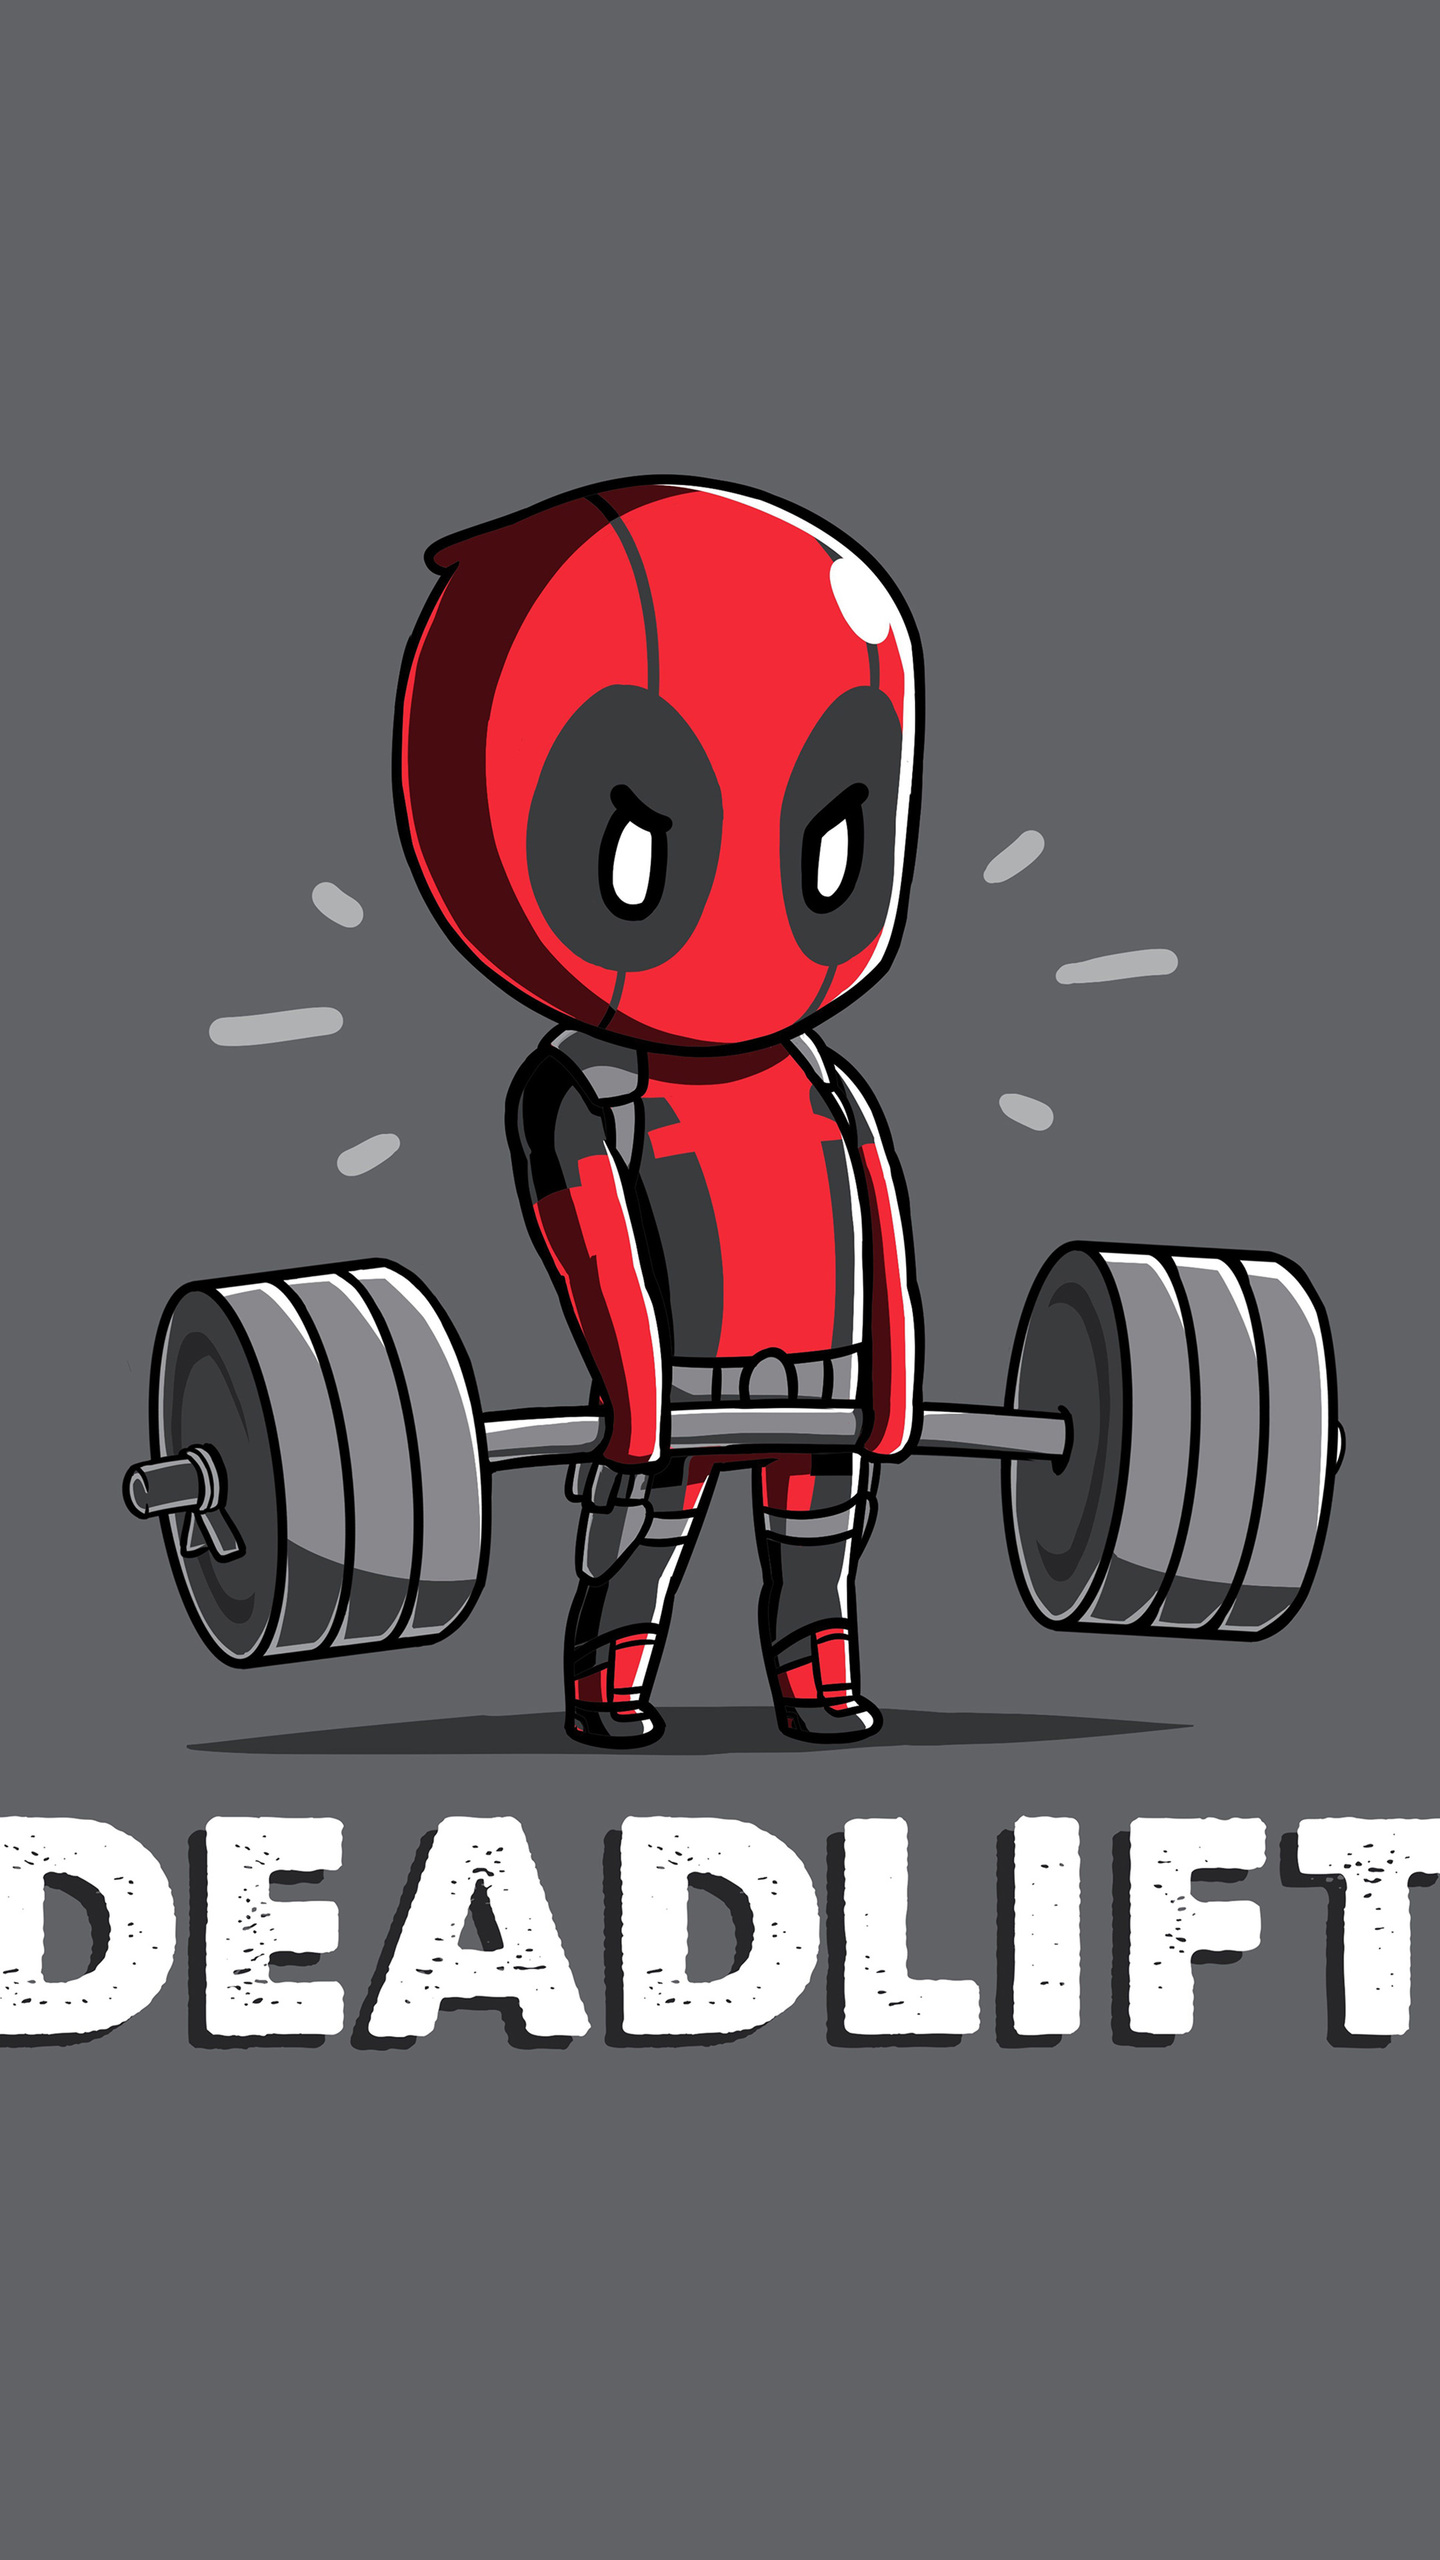 deadpool-deadlift-funny-8k-wp.jpg